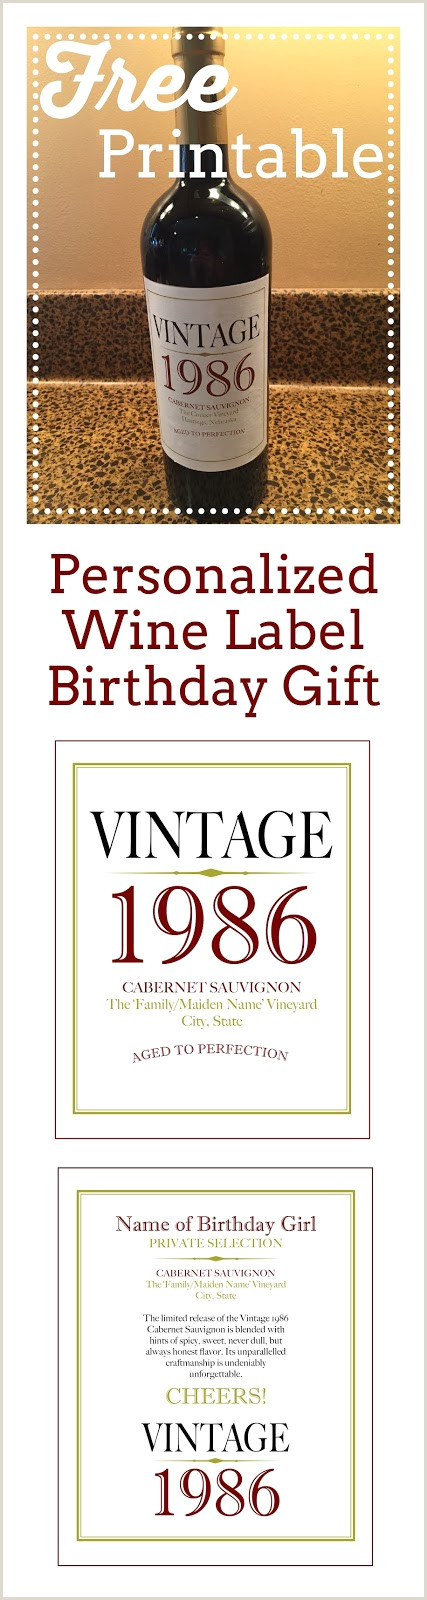 Free printable for Personalized Wine Label Birthday Gift